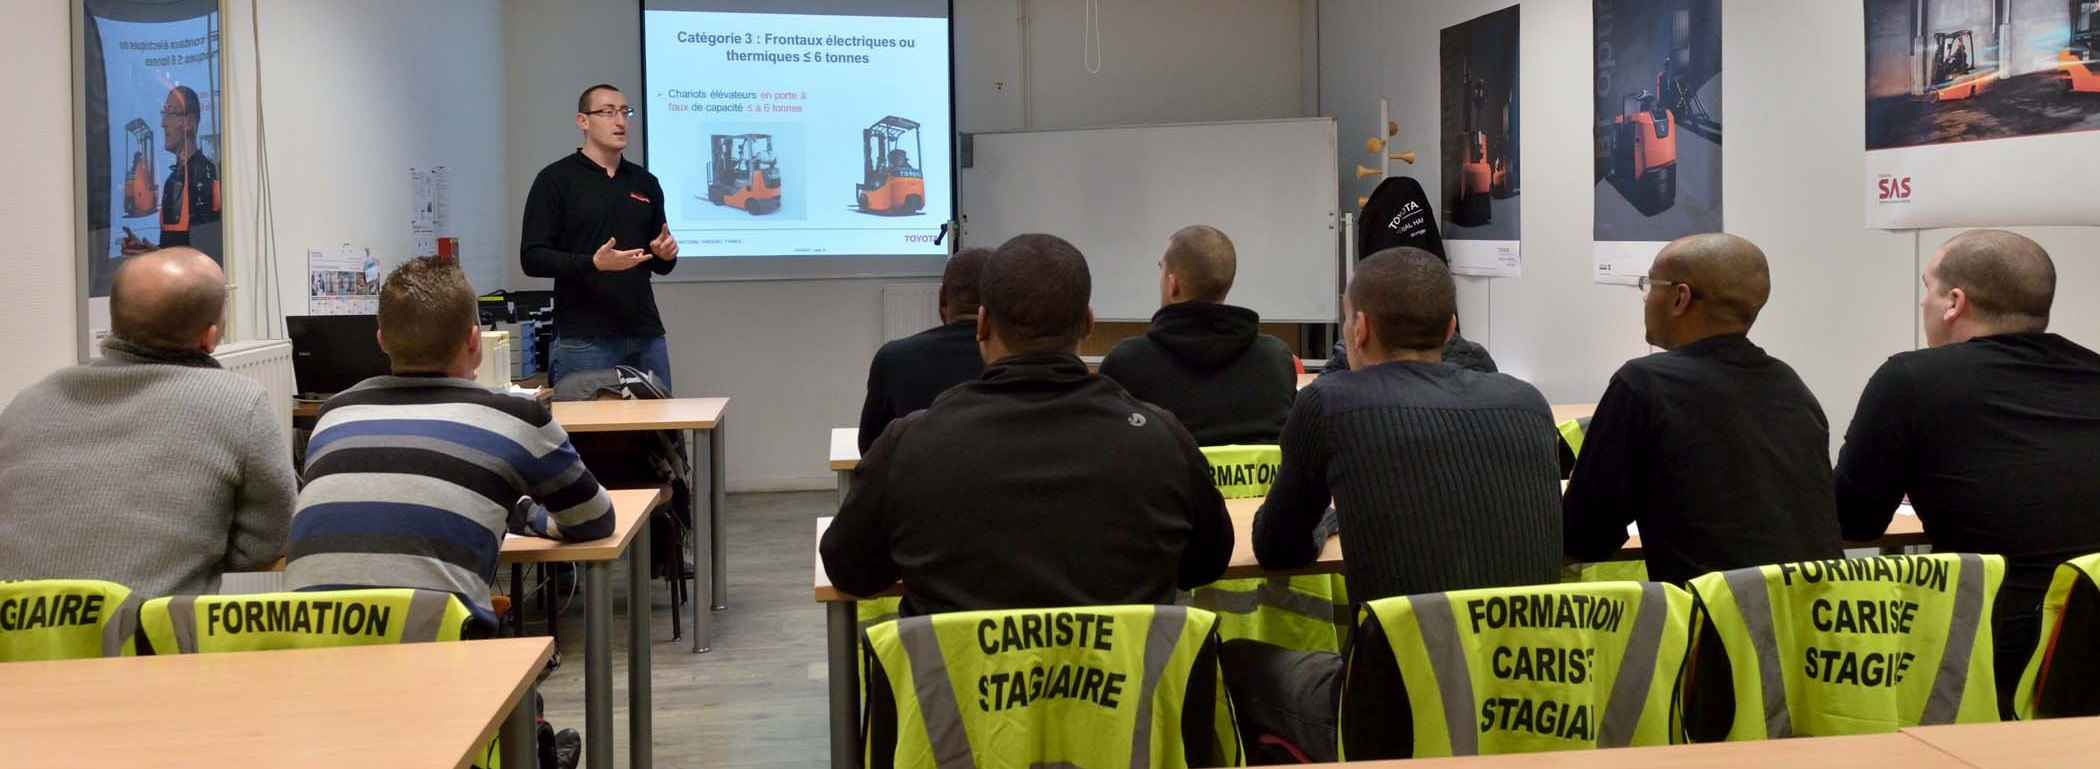 Formation Initiale Cariste (FIC)